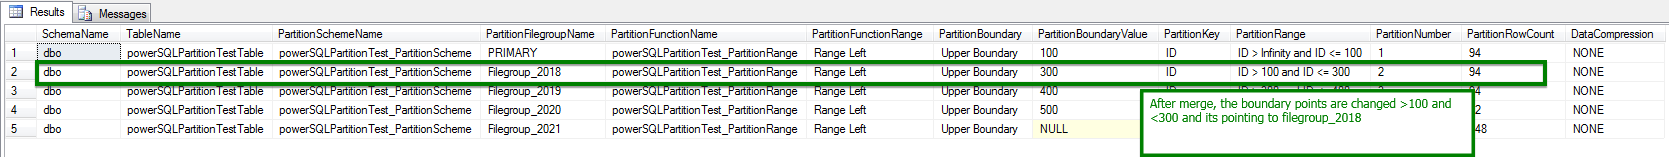 Partition FileGroup Properties